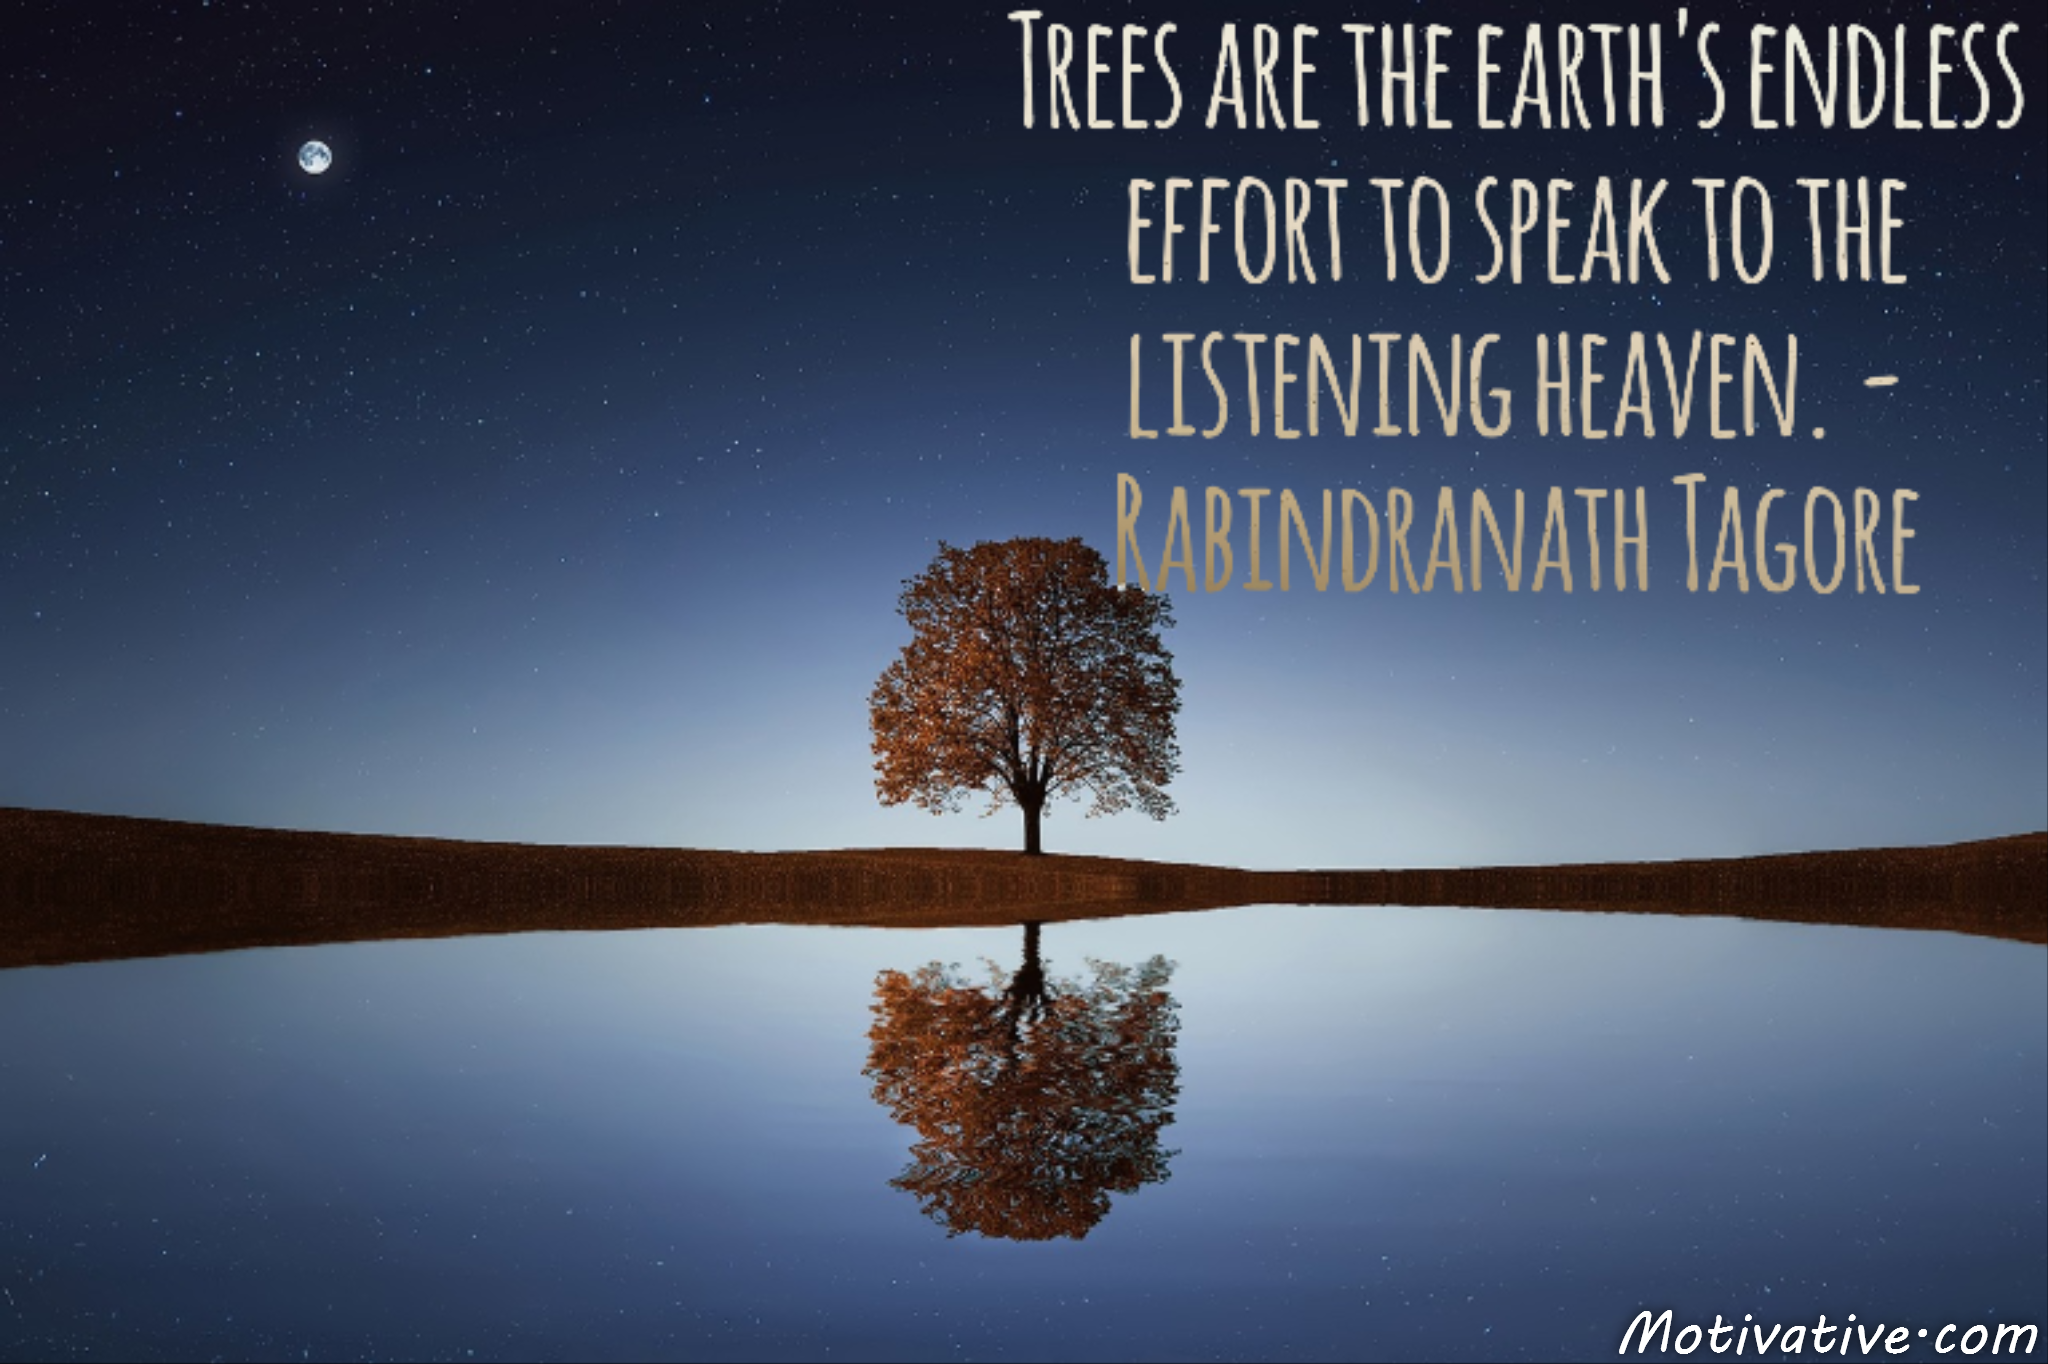 Trees are the earth's endless effort to speak to the listening heaven. – Rabindranath Tagore